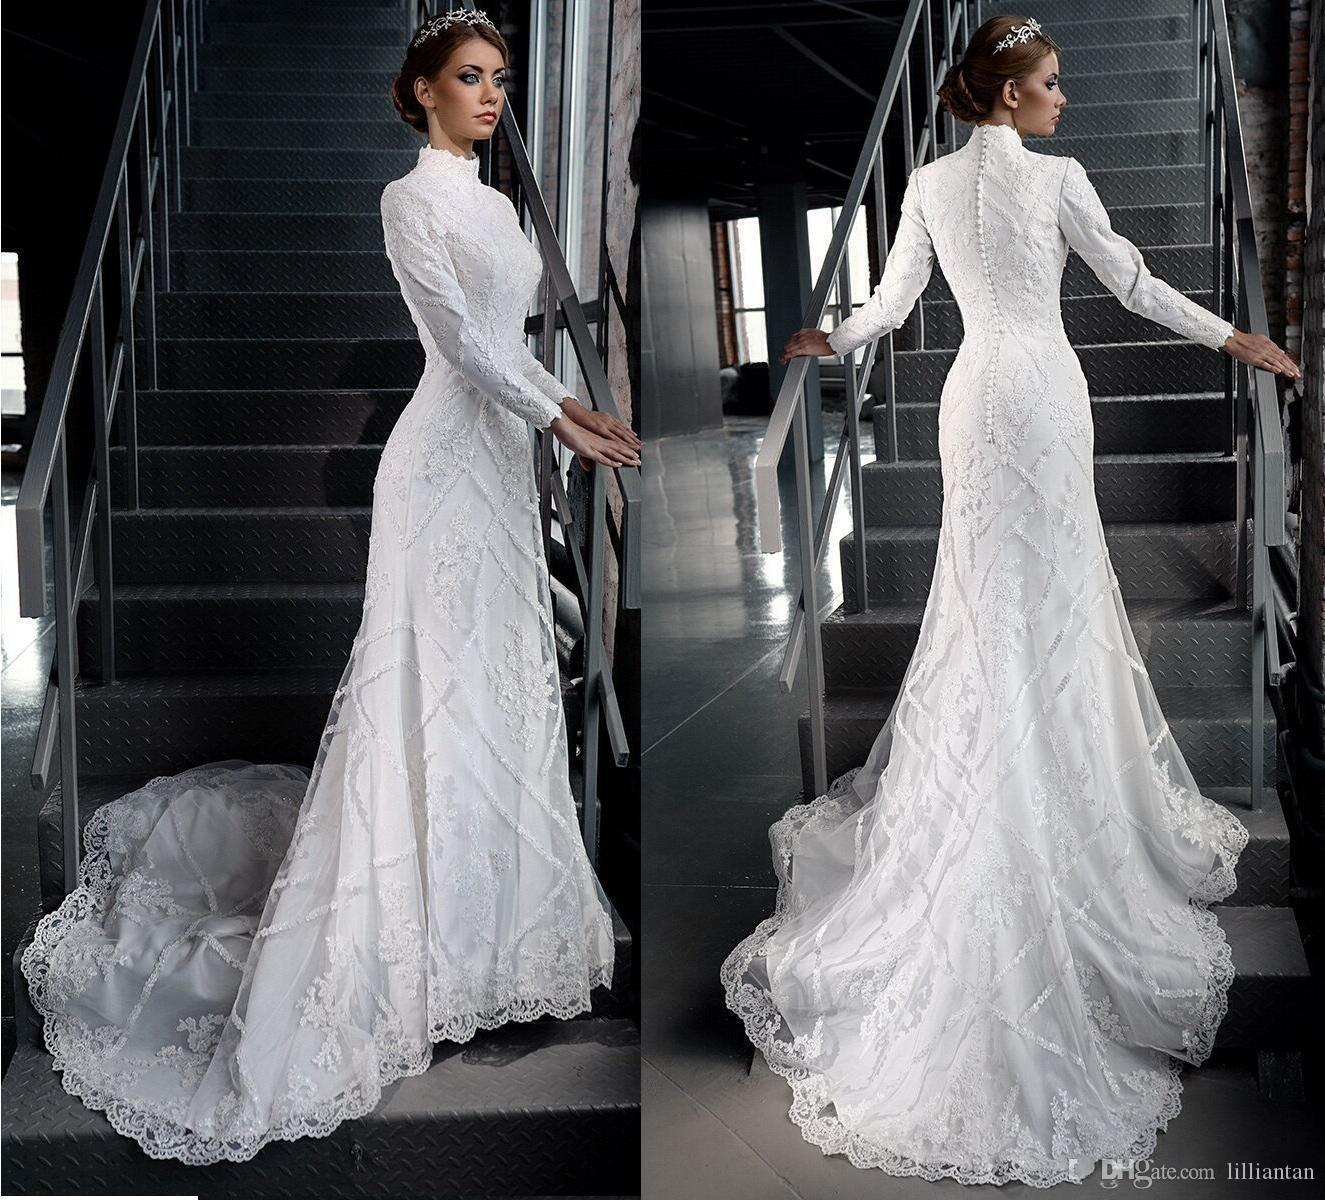 weddings gowns switzerland